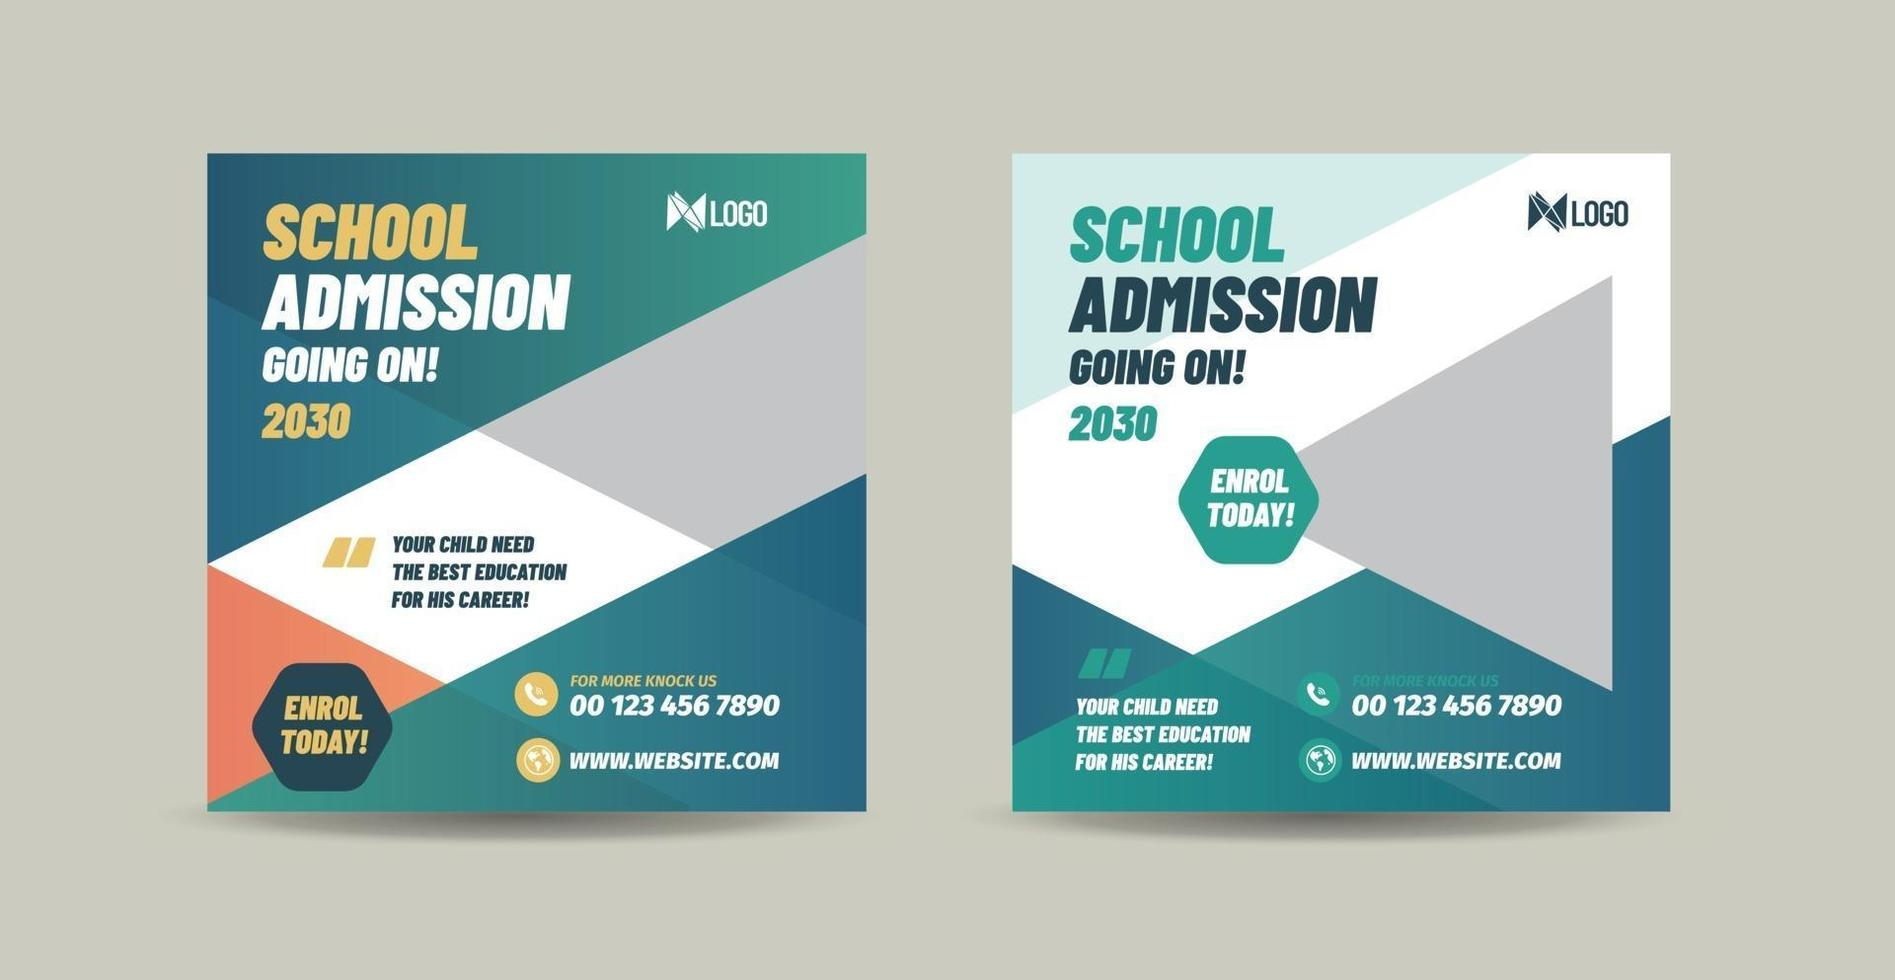 School college university  admission and back to school social media post design vector